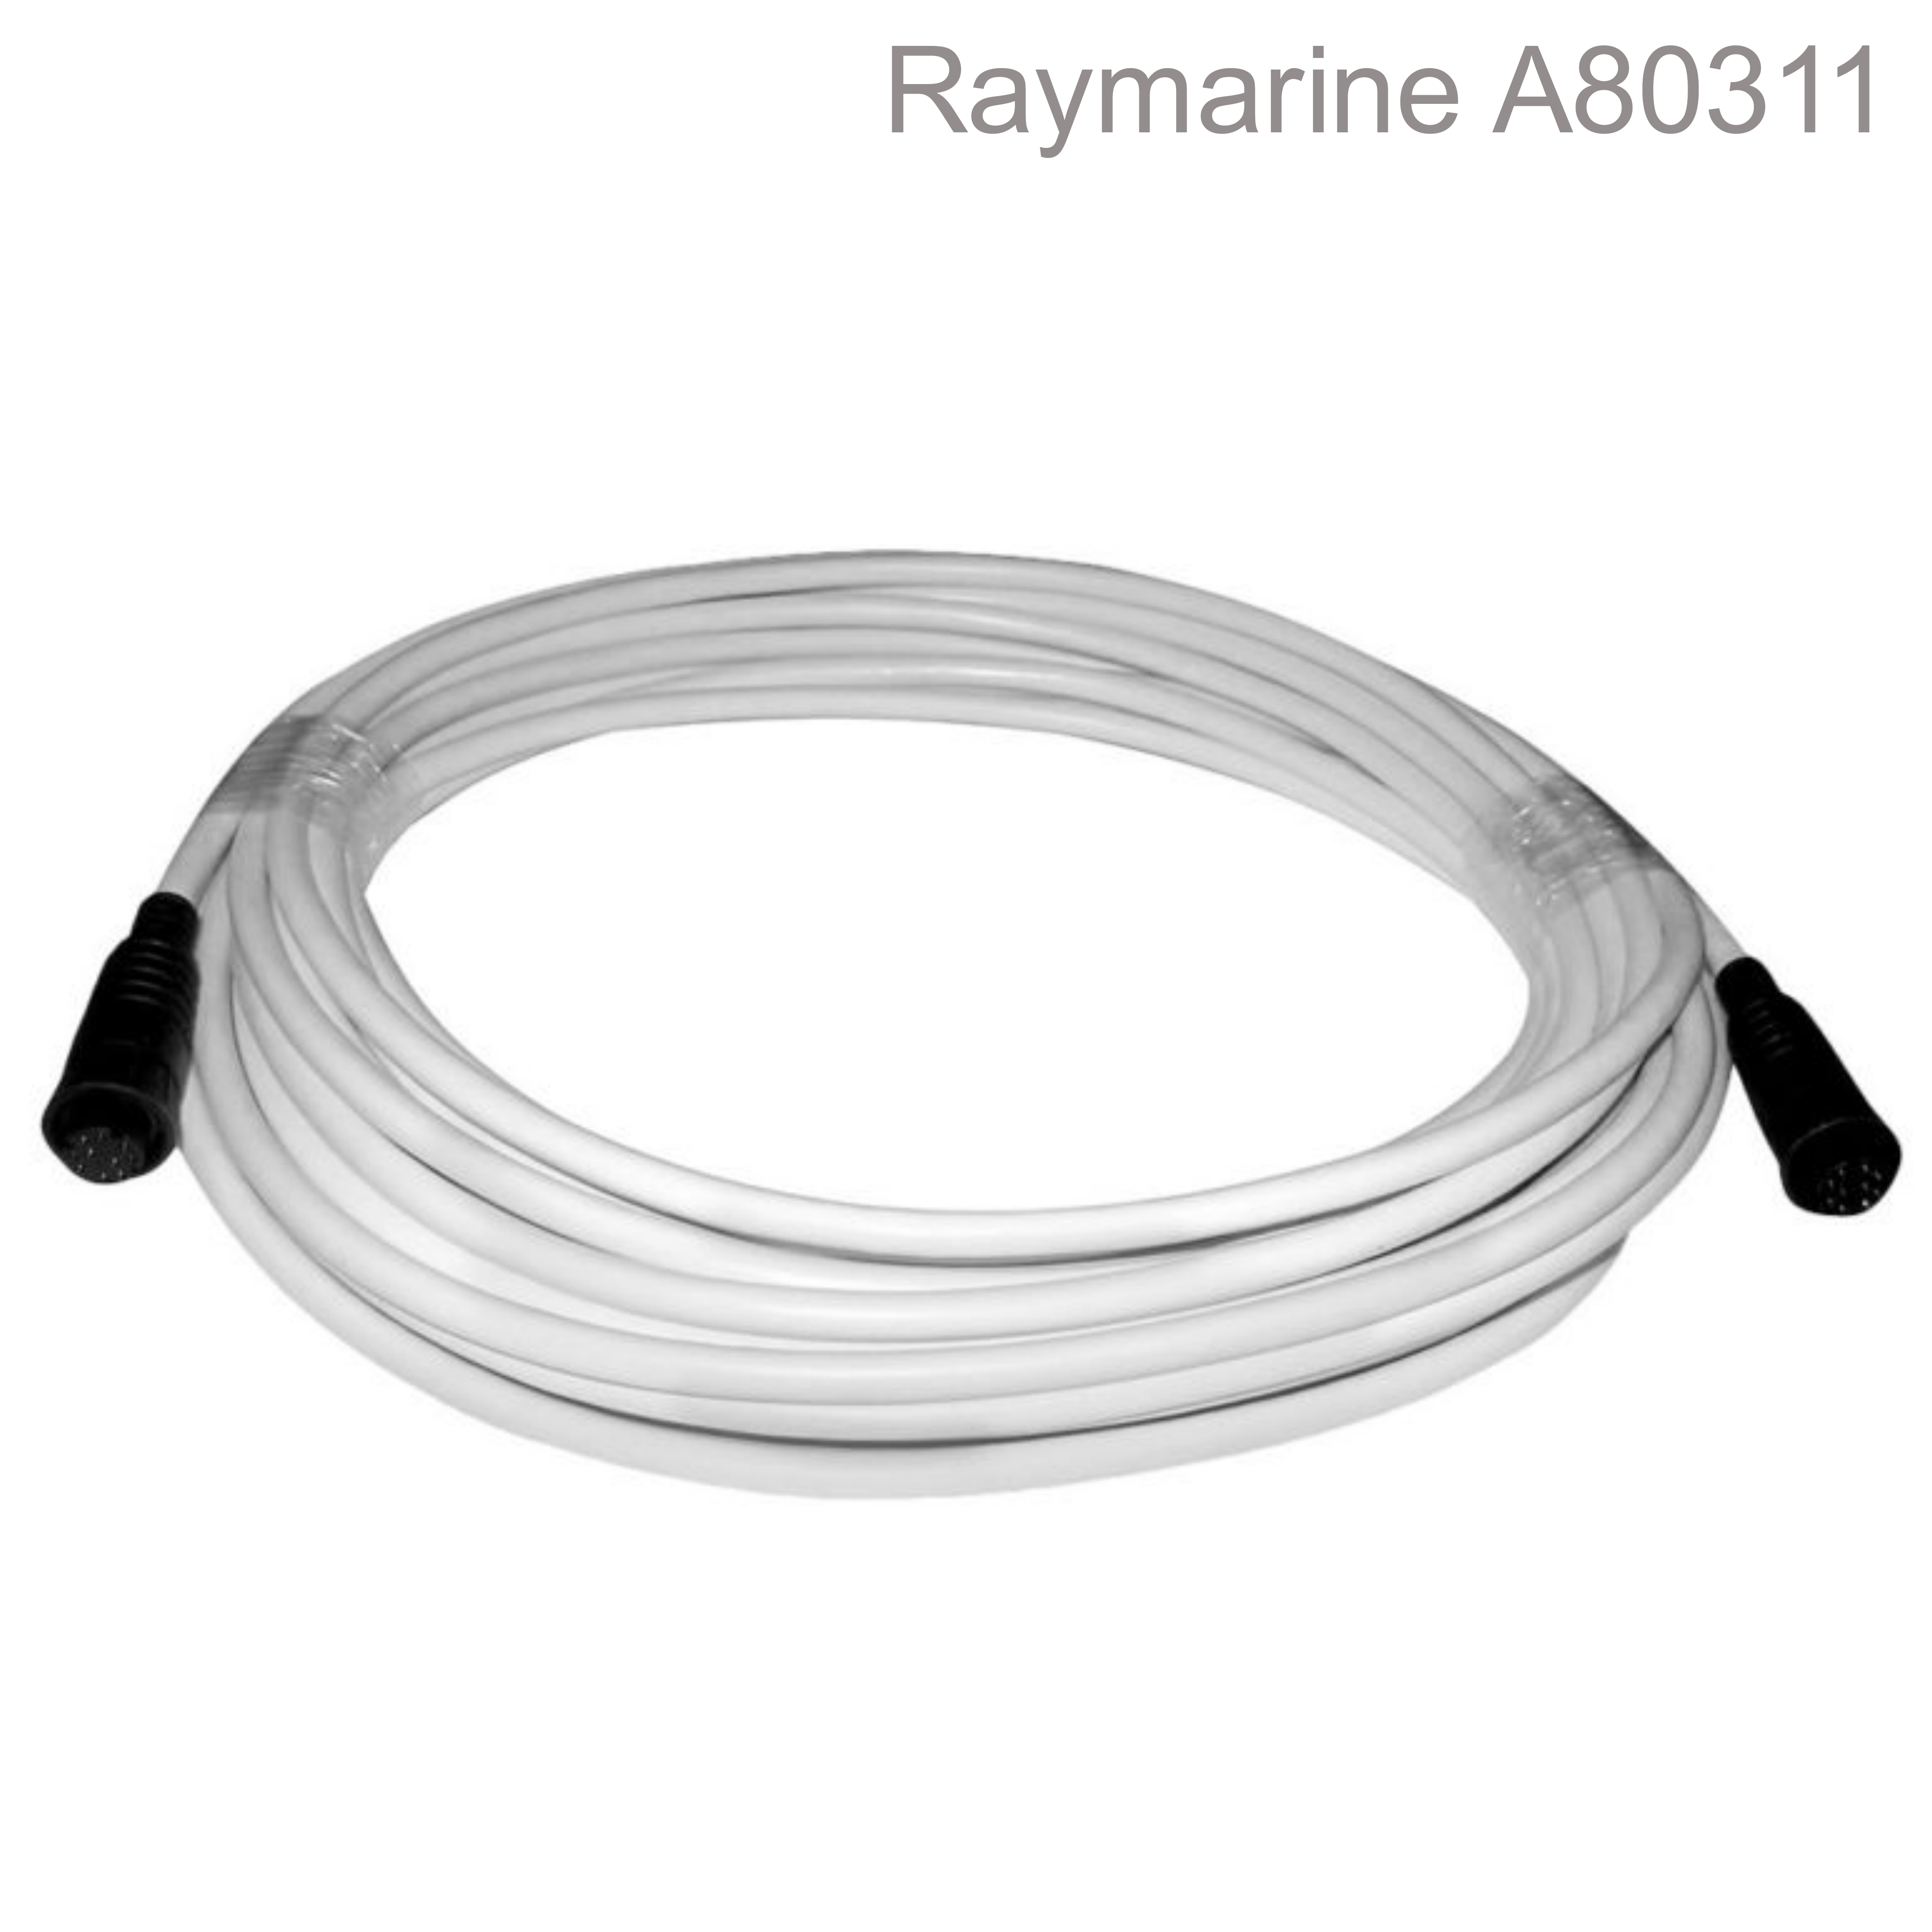 Raymarine-A80311|Quantum Radar System Data Cable| 25 Meter|White|For Marine